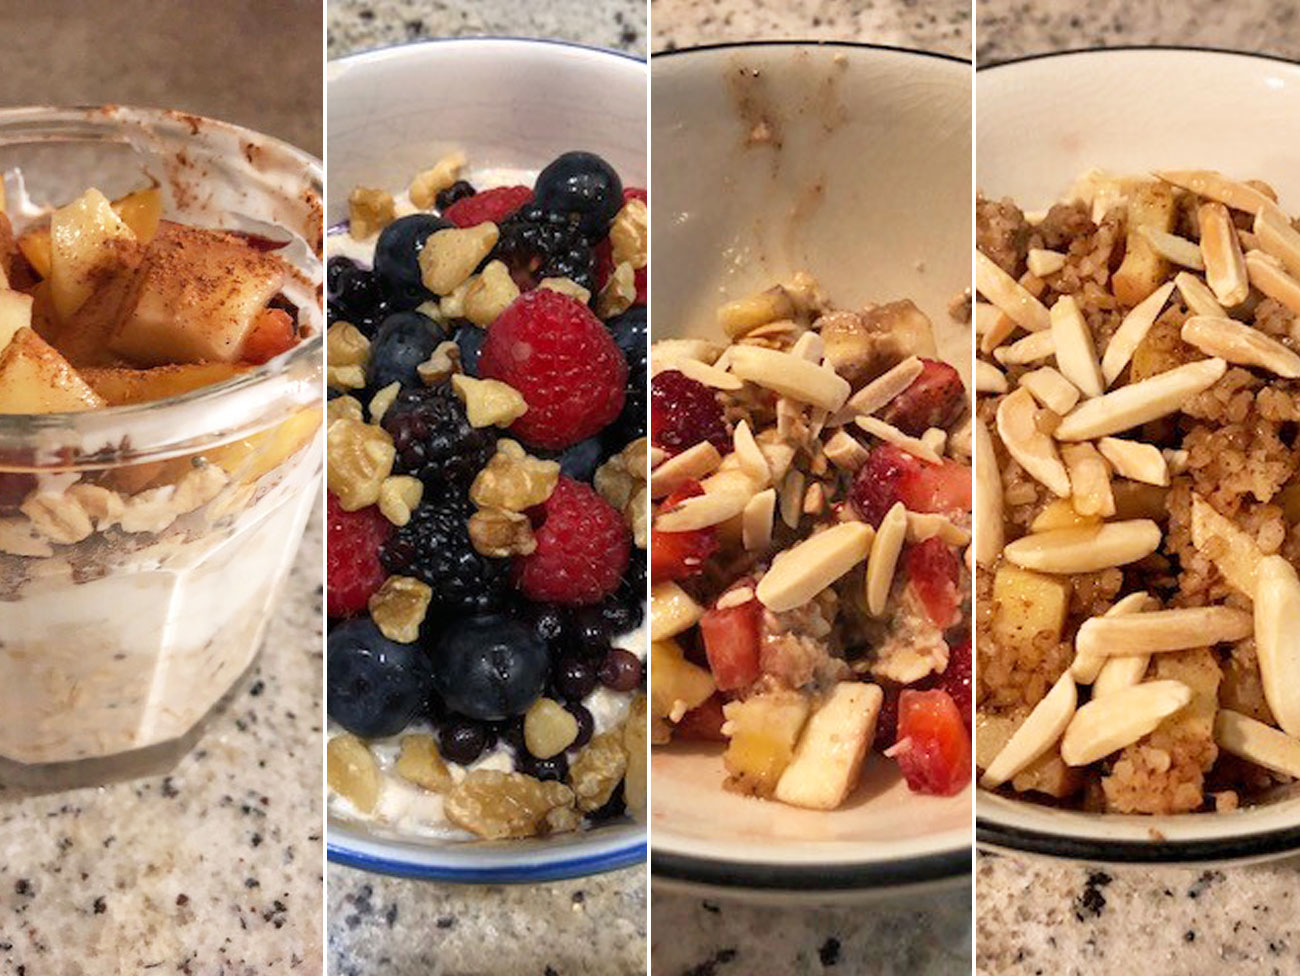 4 bowls with different versions of overnight oats: peach cobbler, mixed berries with banana and walnuts, slivered almonds with strawberries, and apples with bulgur